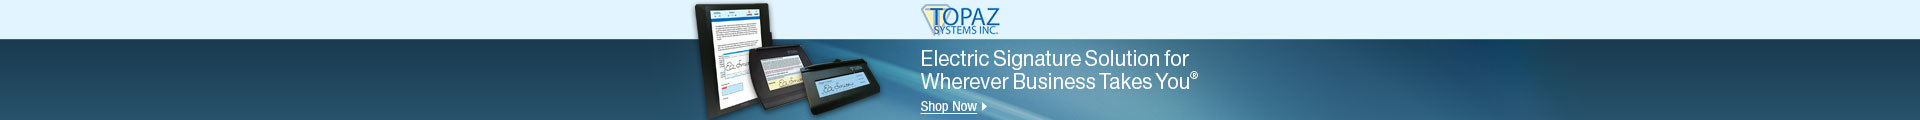 Electric signature solution